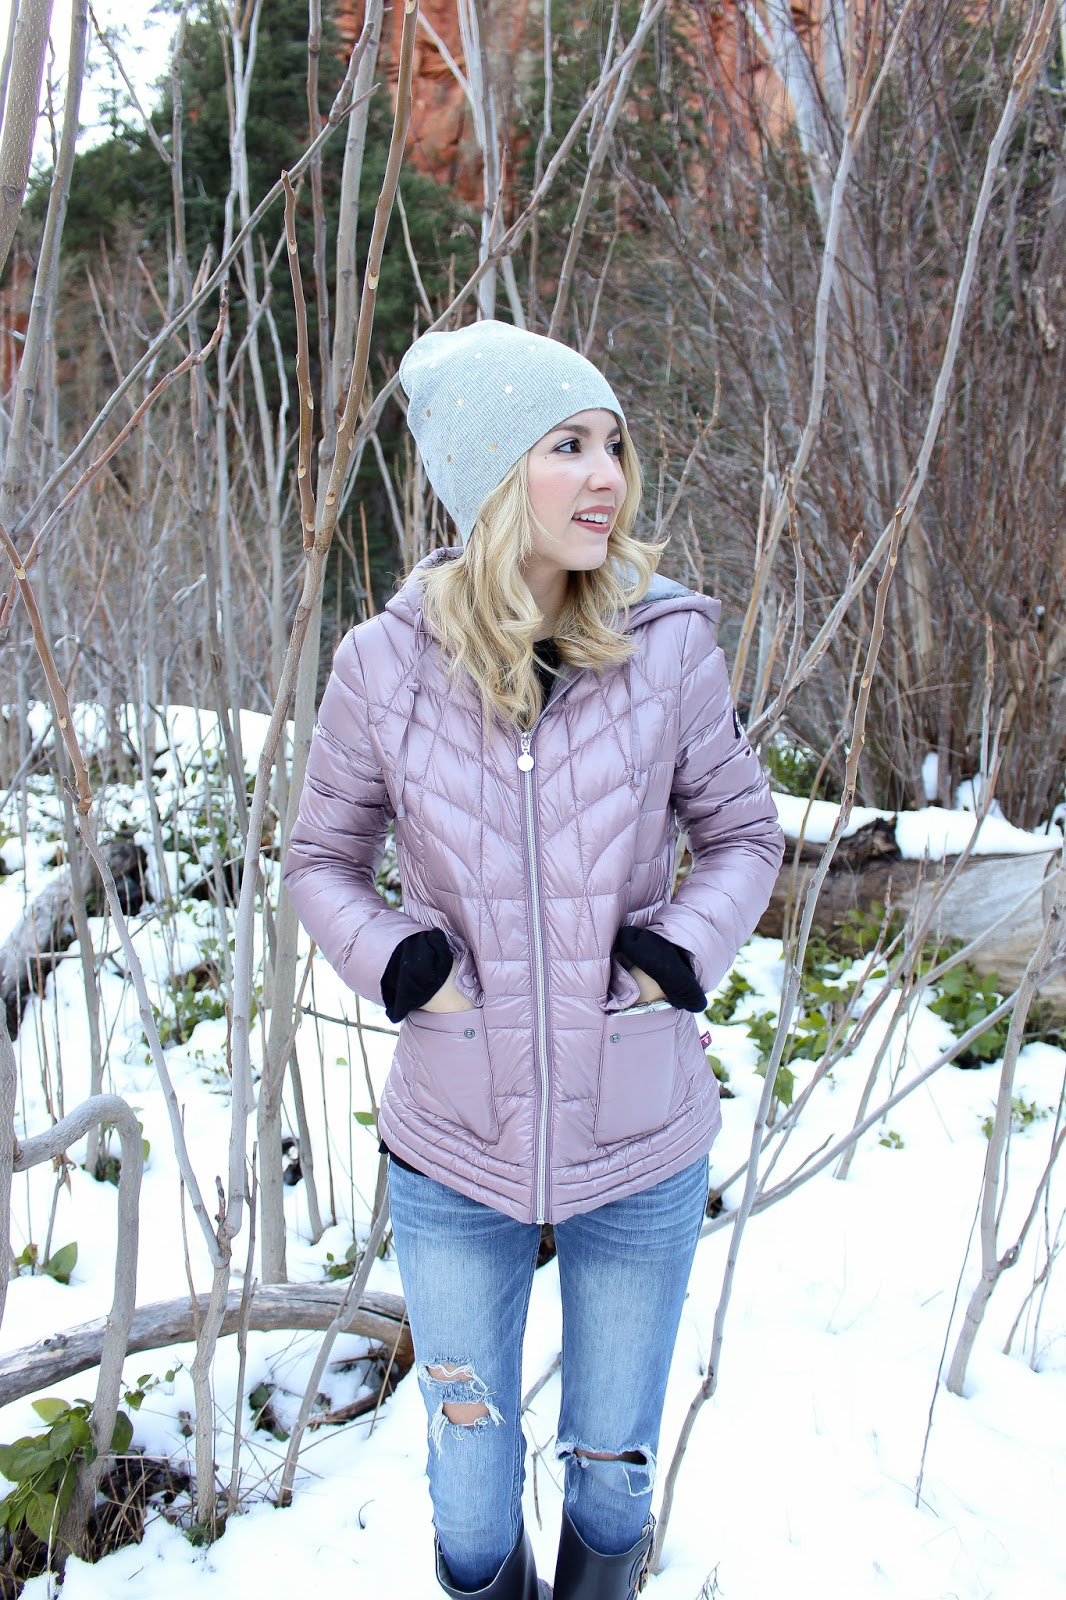 casual outfit for snow - snow outfit - puffer jacket - travel style